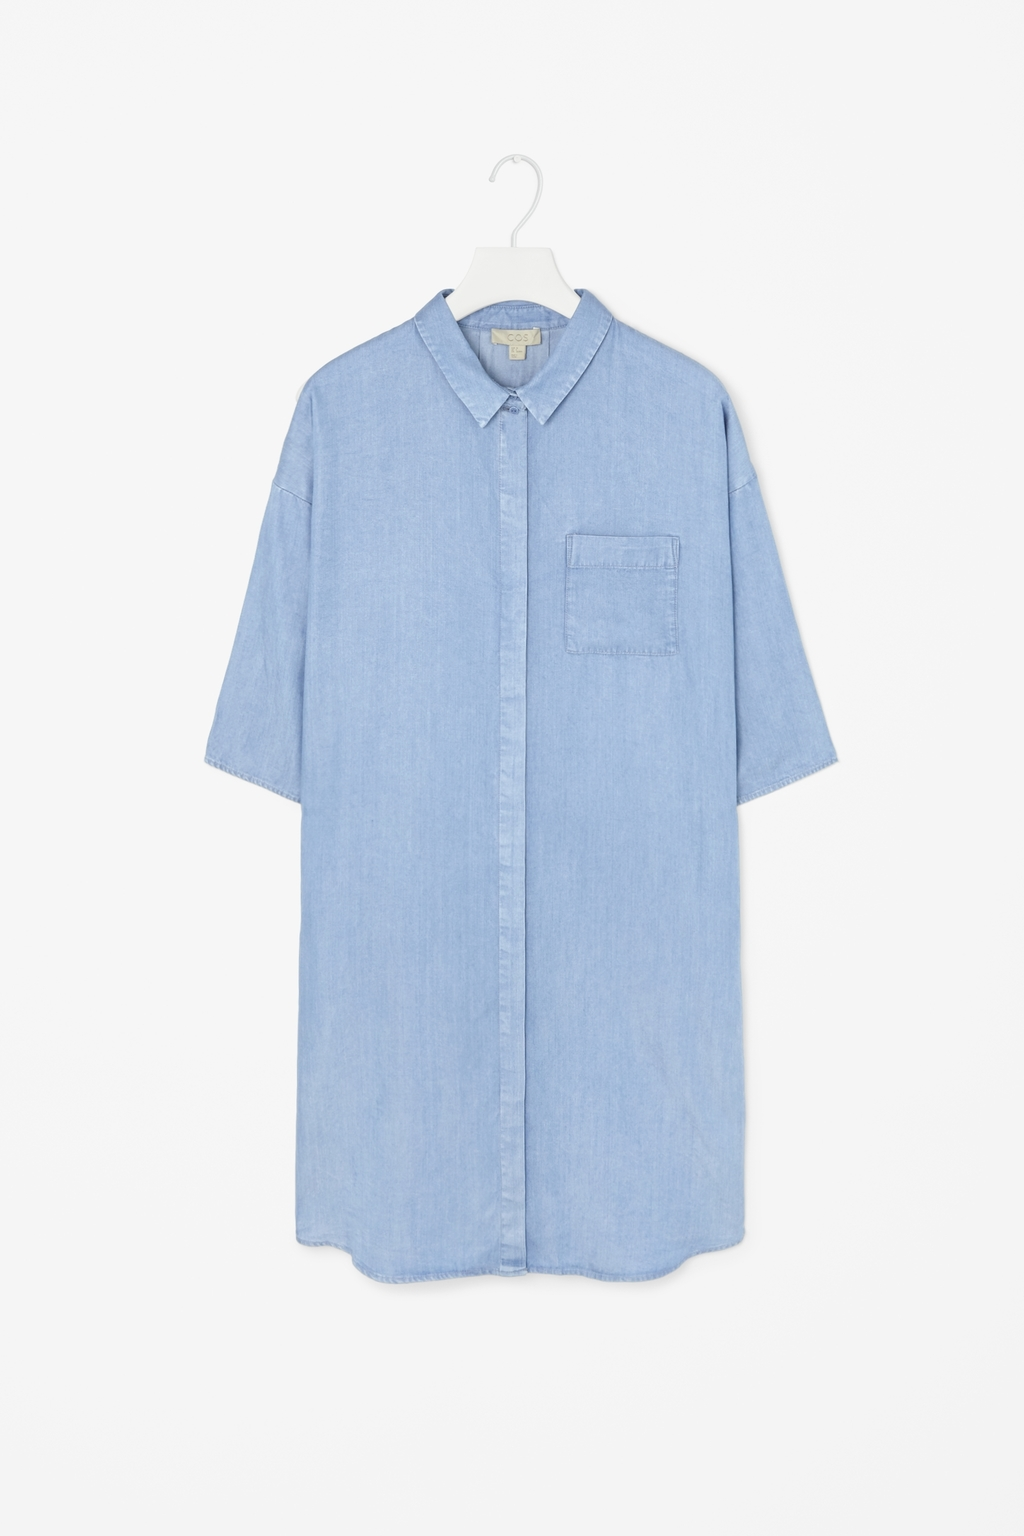 Denim Look Shirt Dress - style: shirt; neckline: shirt collar/peter pan/zip with opening; pattern: plain; predominant colour: pale blue; occasions: casual, creative work; length: just above the knee; fit: straight cut; fibres: viscose/rayon - 100%; sleeve length: 3/4 length; sleeve style: standard; texture group: denim; pattern type: fabric; season: s/s 2015; wardrobe: basic